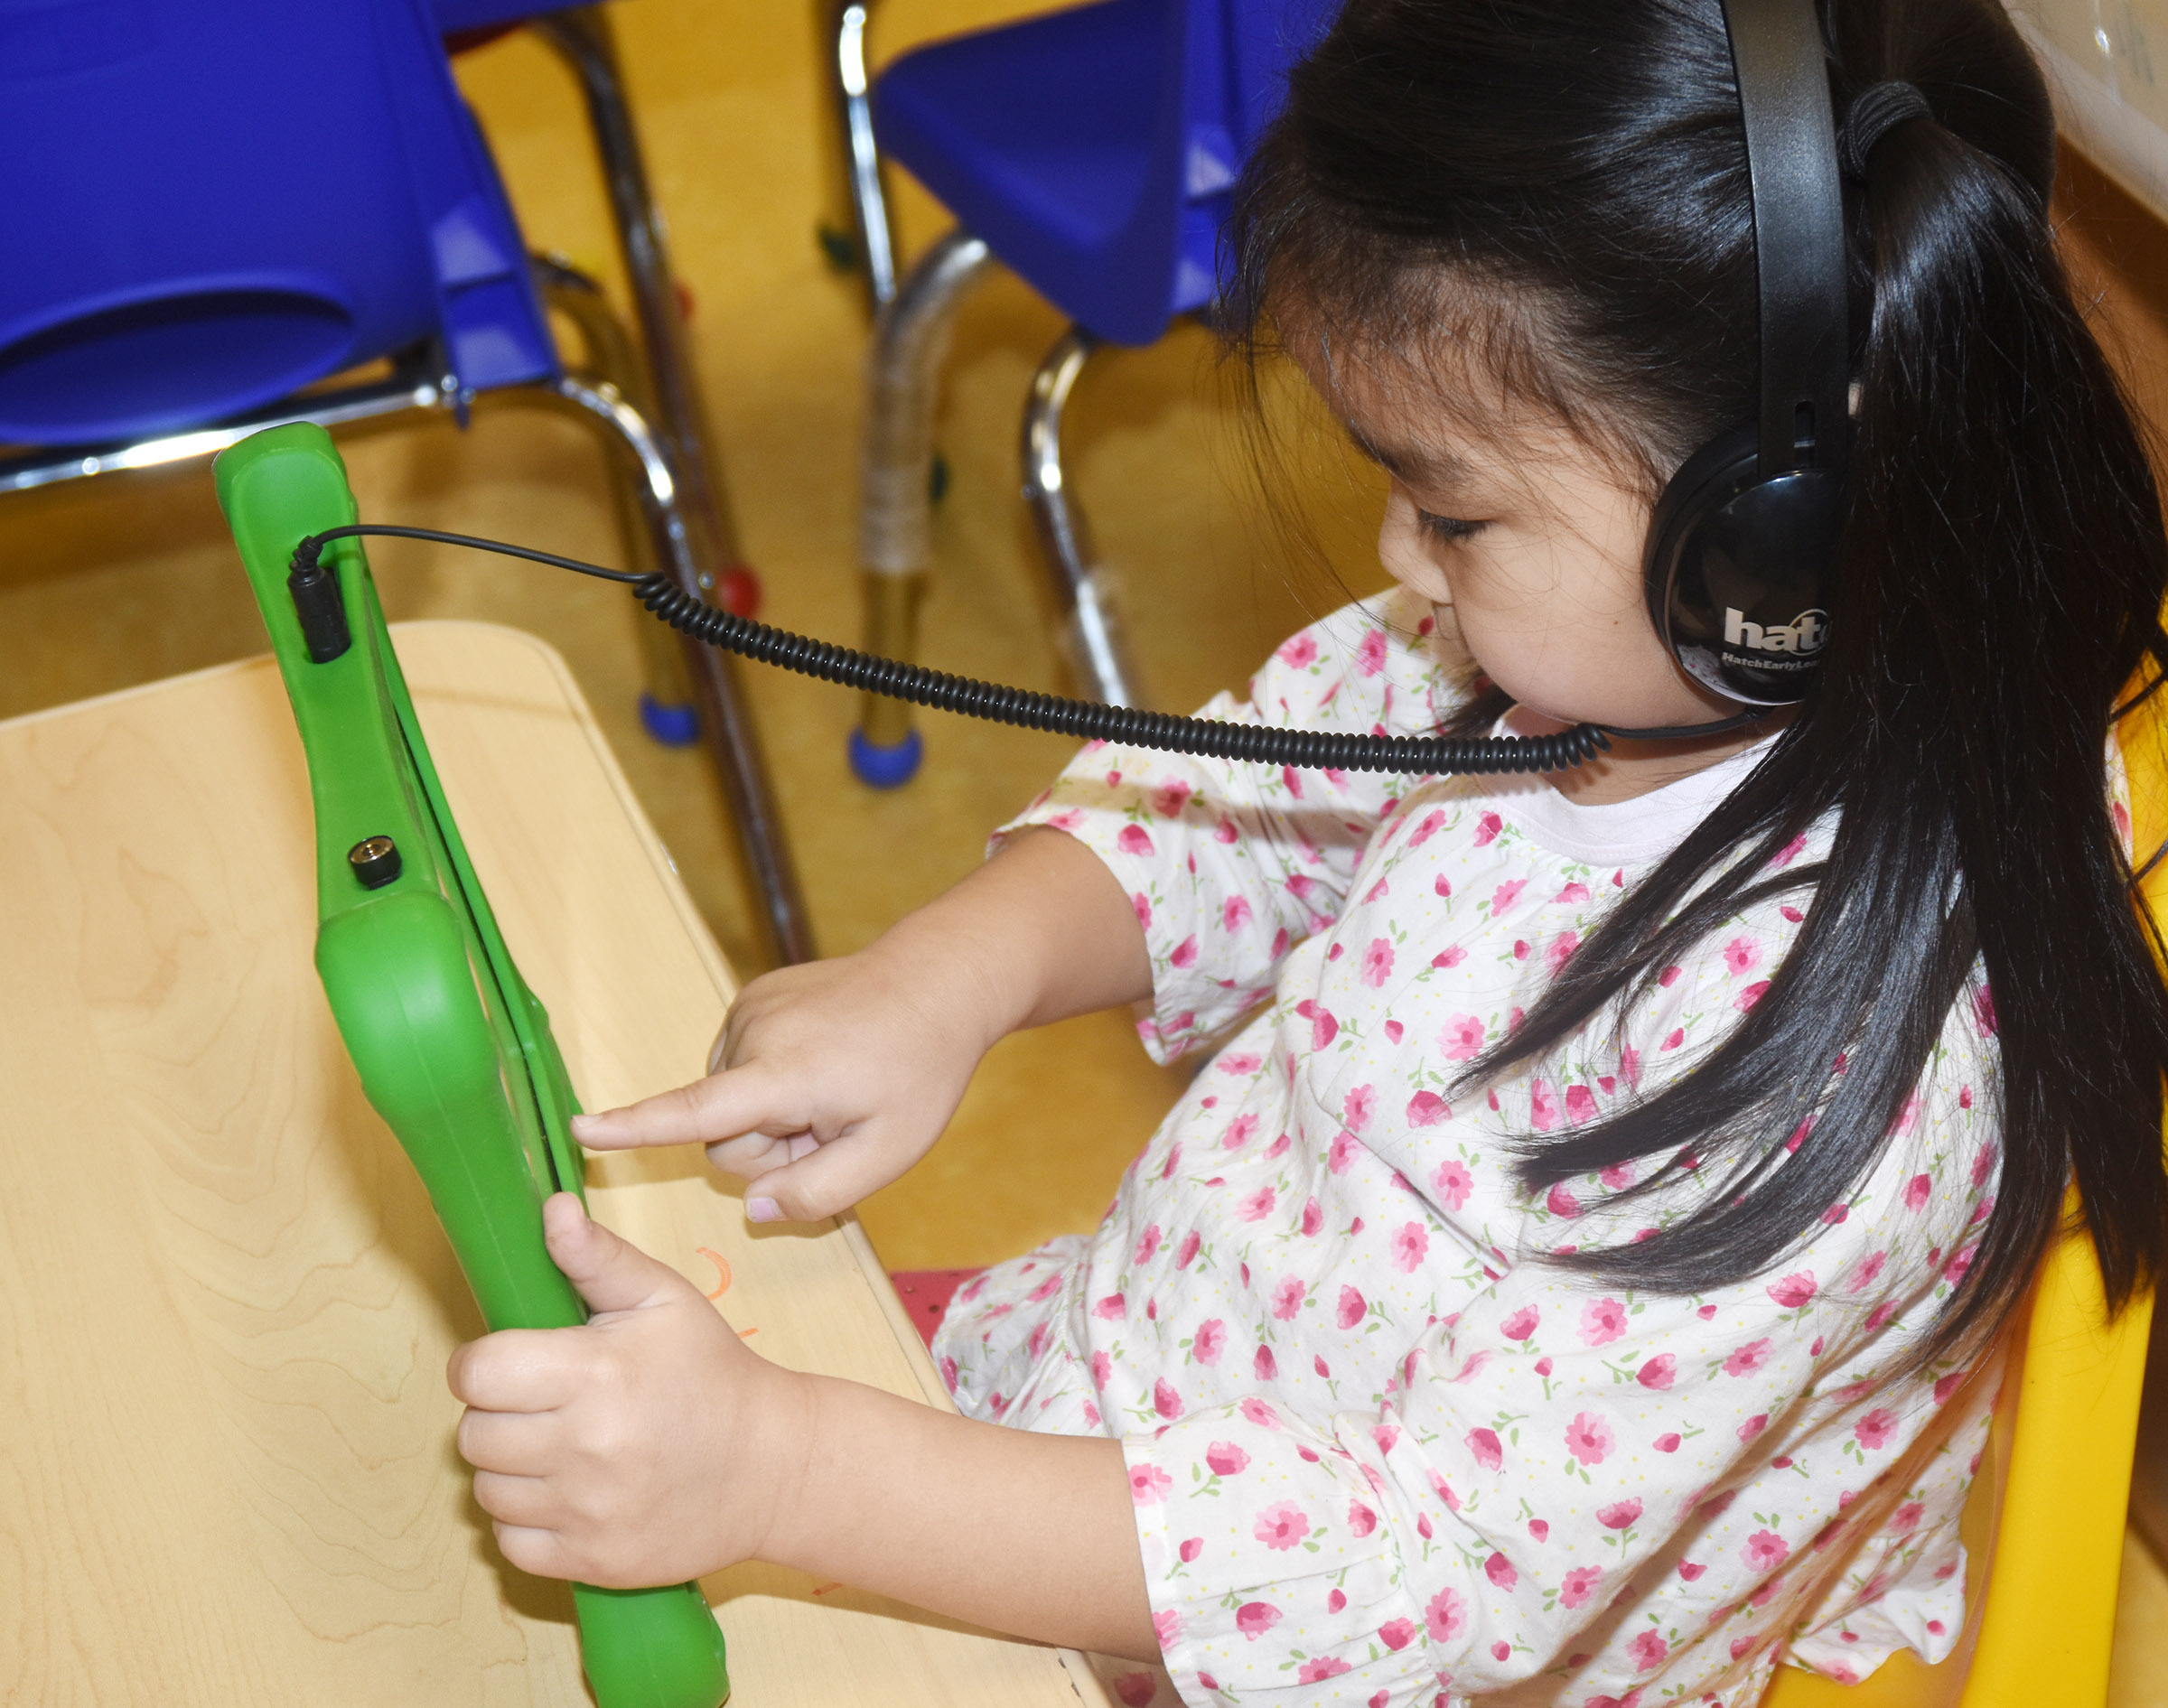 CES preschool student Marla Bat plays a game on her iStartSmart tablet.